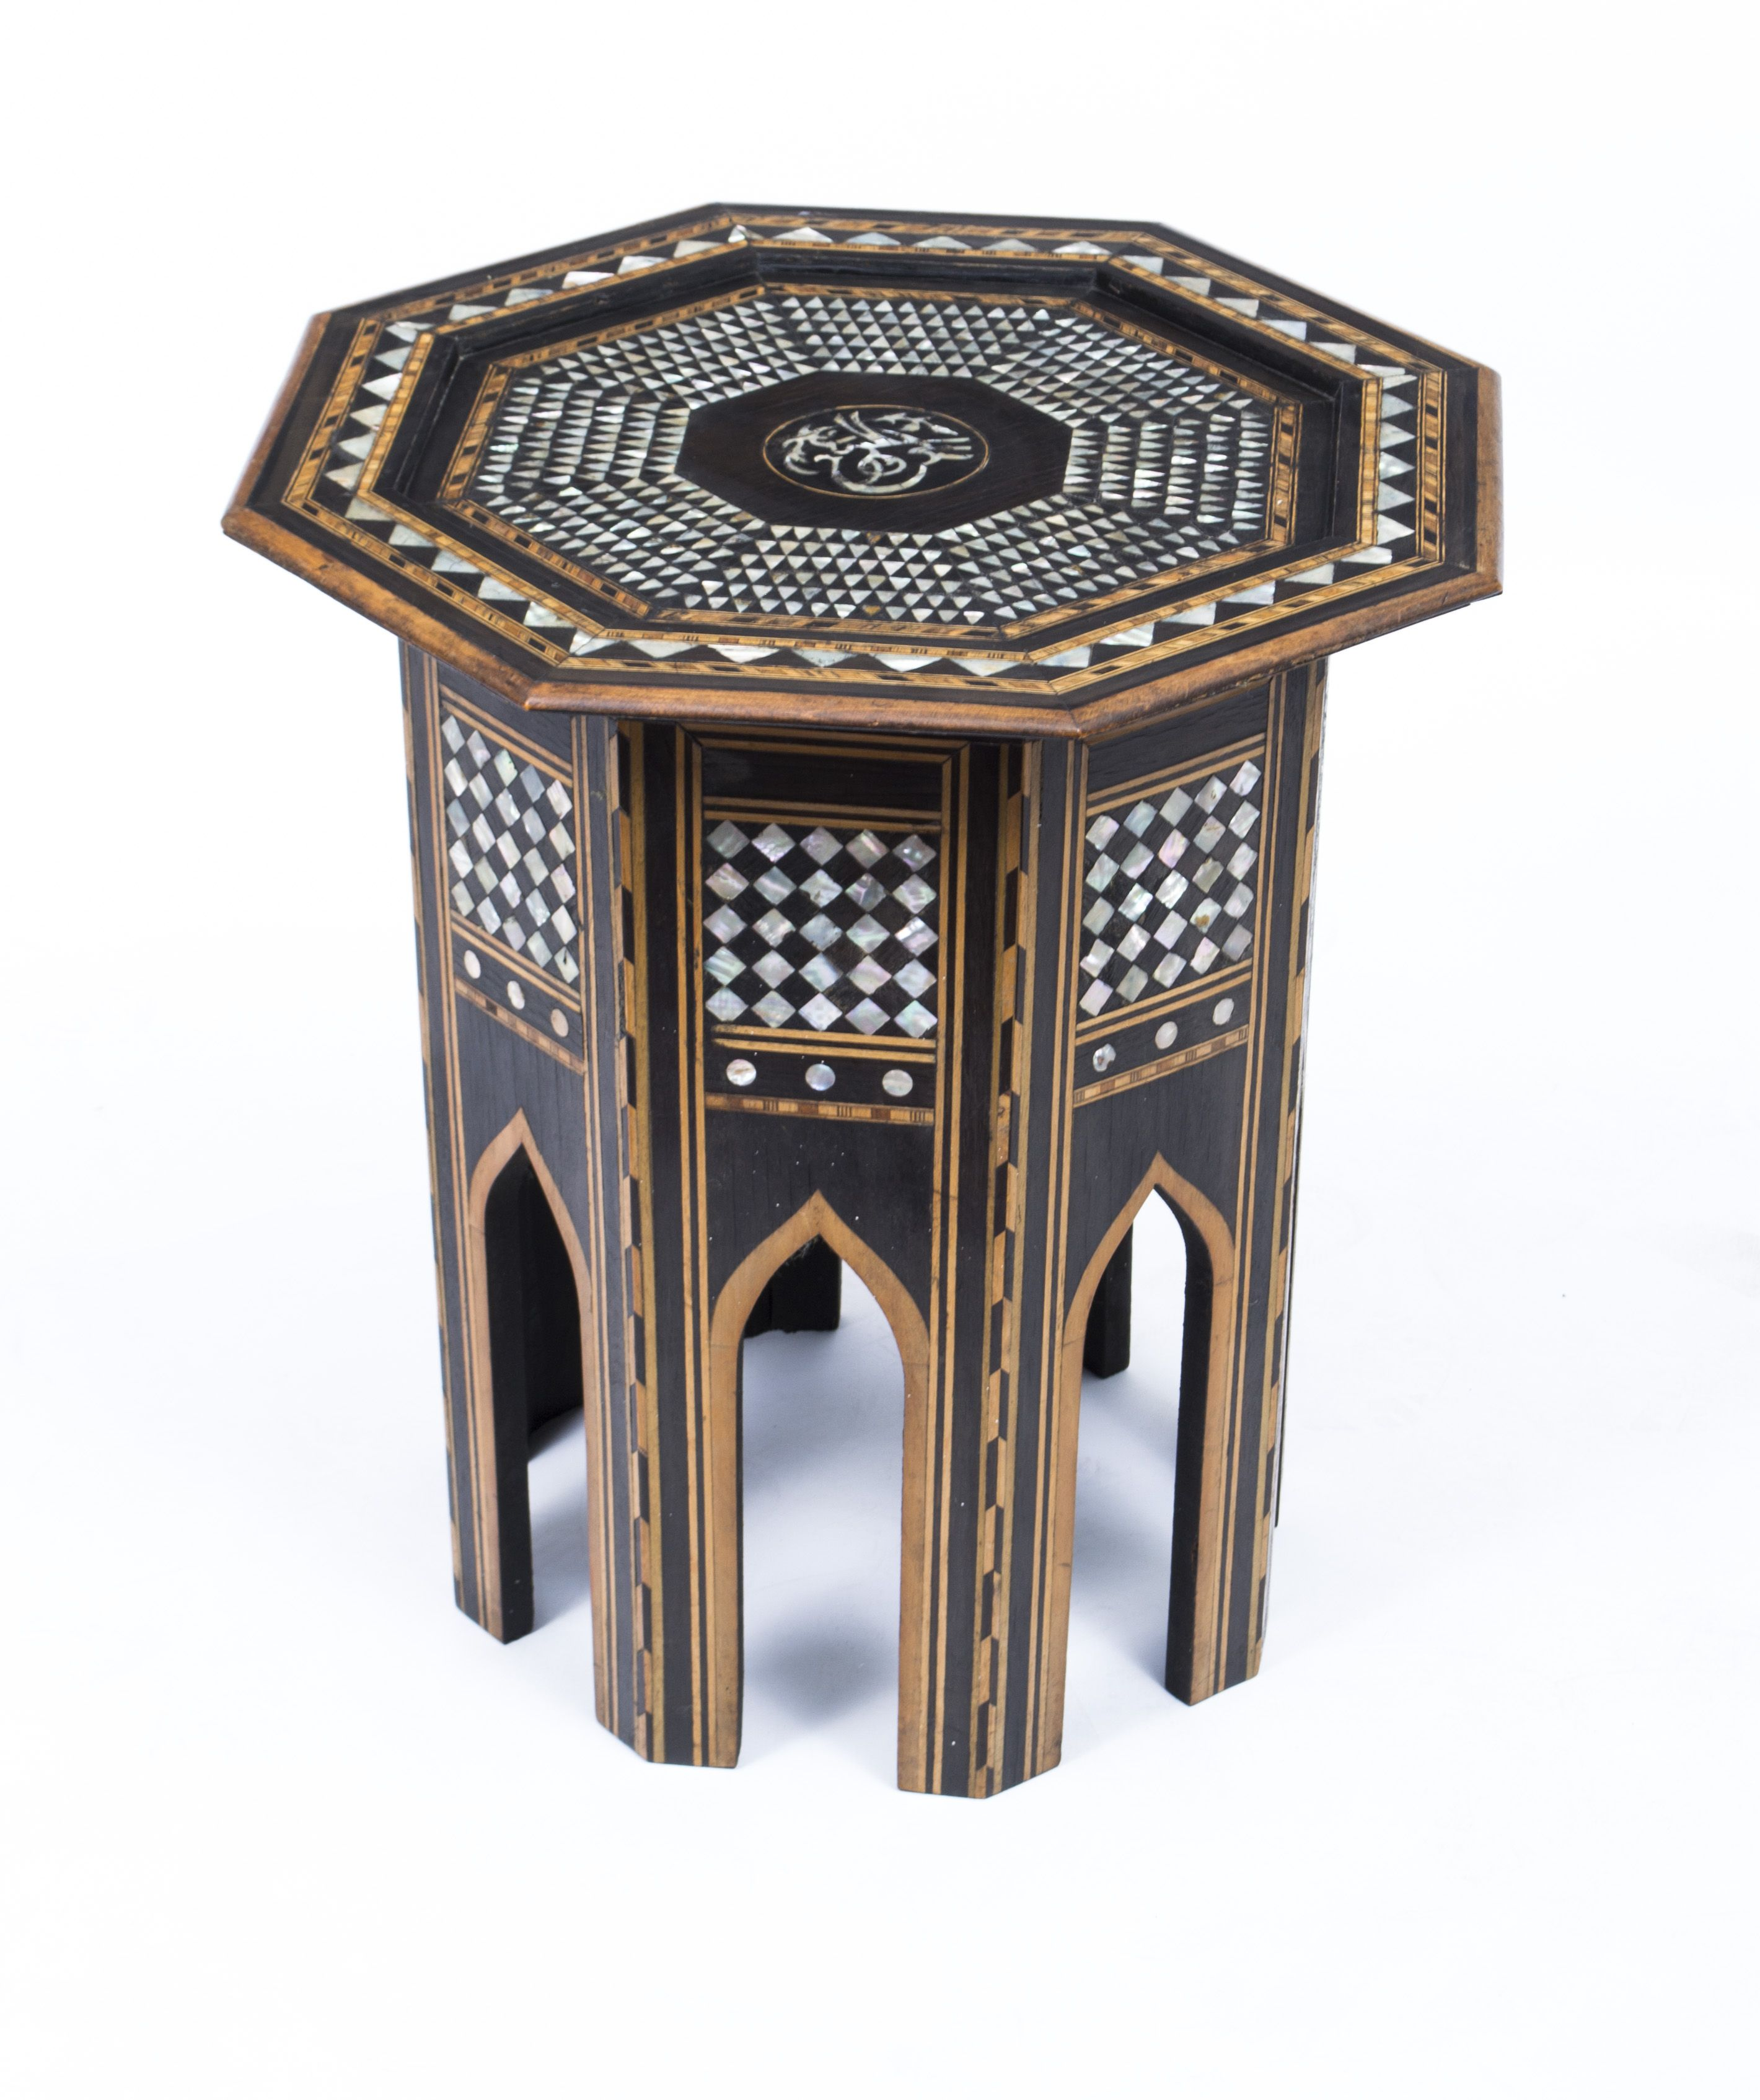 Mid century wheat sheaf coffee table irish antique dealers - This Is A Beautiful Antique Persian Inlaid Octagonal Occasional Table C1900 In Date The Table Is Exquisitely Crafted With Cut Out Arabesque Shap